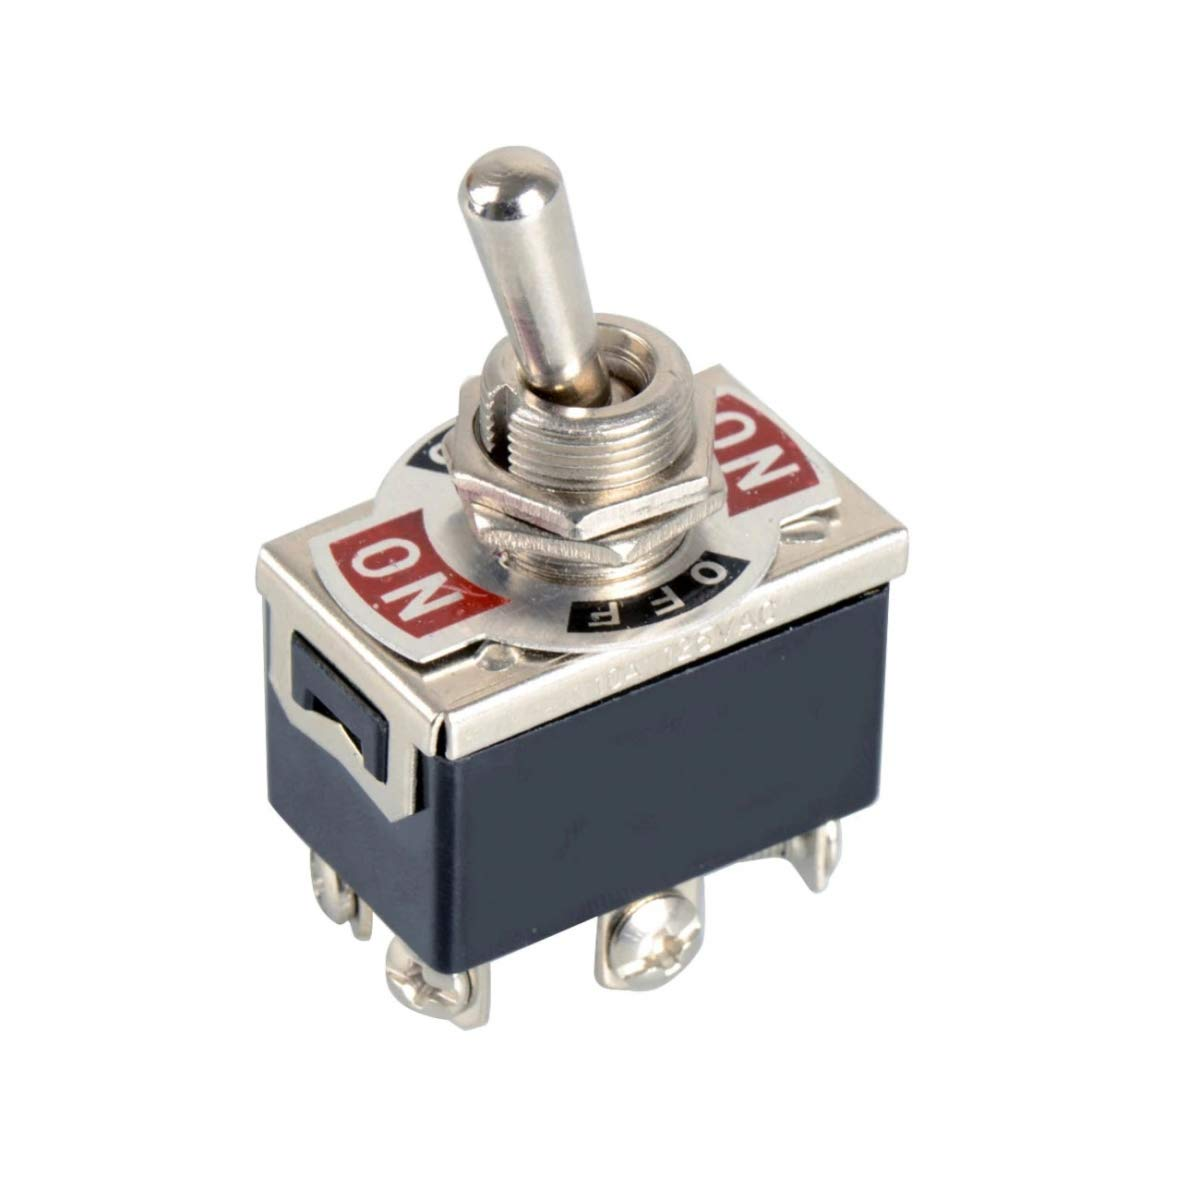 DPDT 6-Pin 3-Position On/Off/On Metal Toggle Switch 240V/15A 120V/20A AC:  Amazon.com: Industrial & Scientific